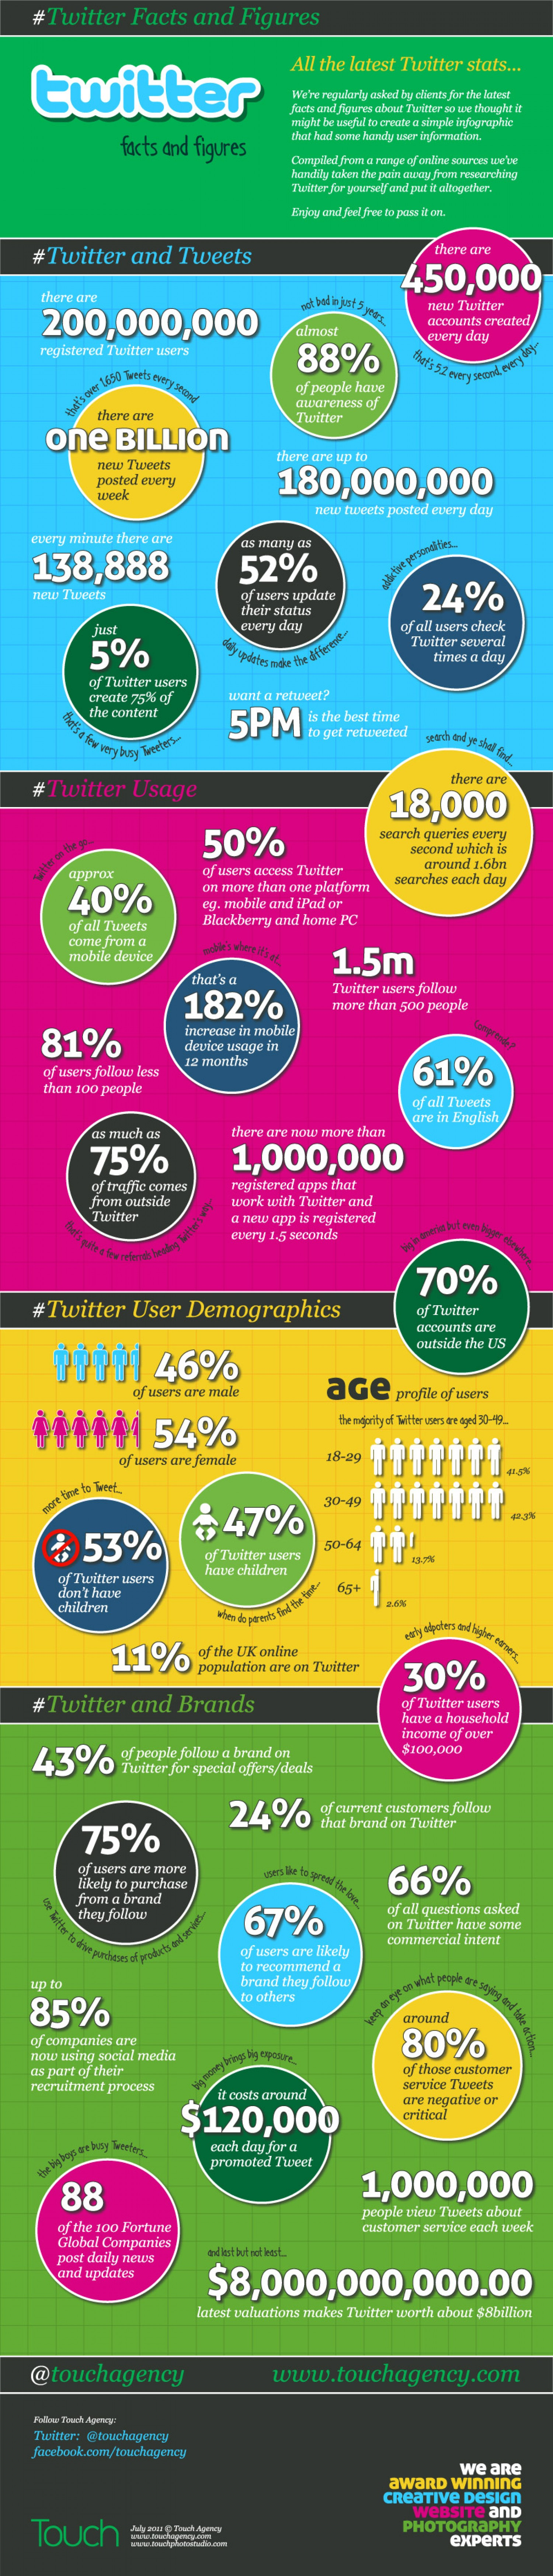 13. Twitter Facts and Figures